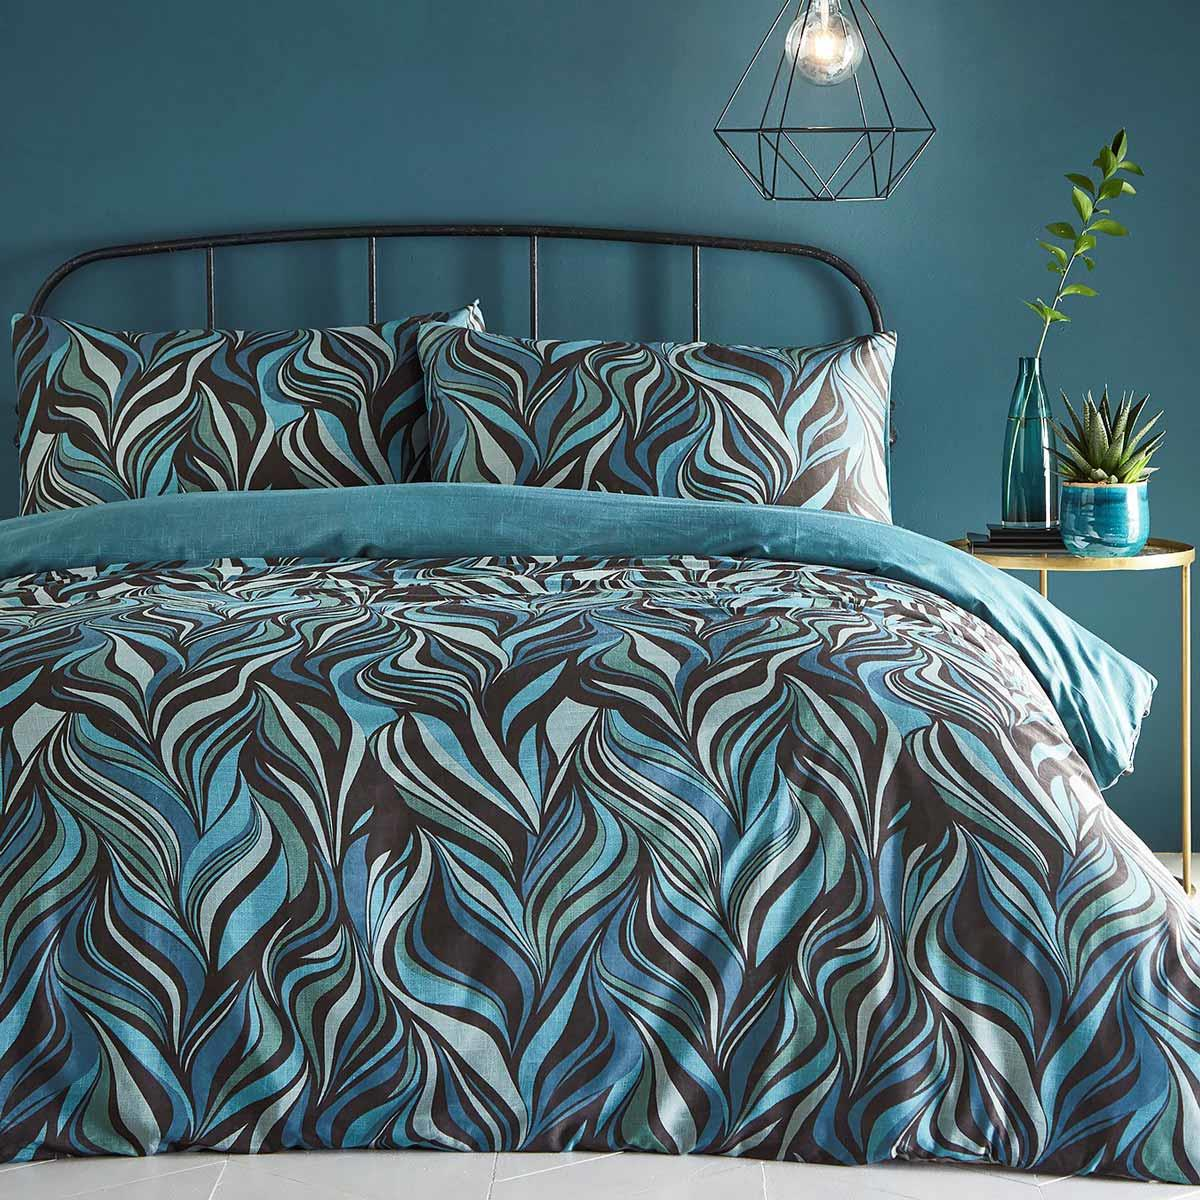 Teal Duvet Covers Retro Abstract Swirl 300 Thread Count Quilt Cover Bedding Sets Ebay